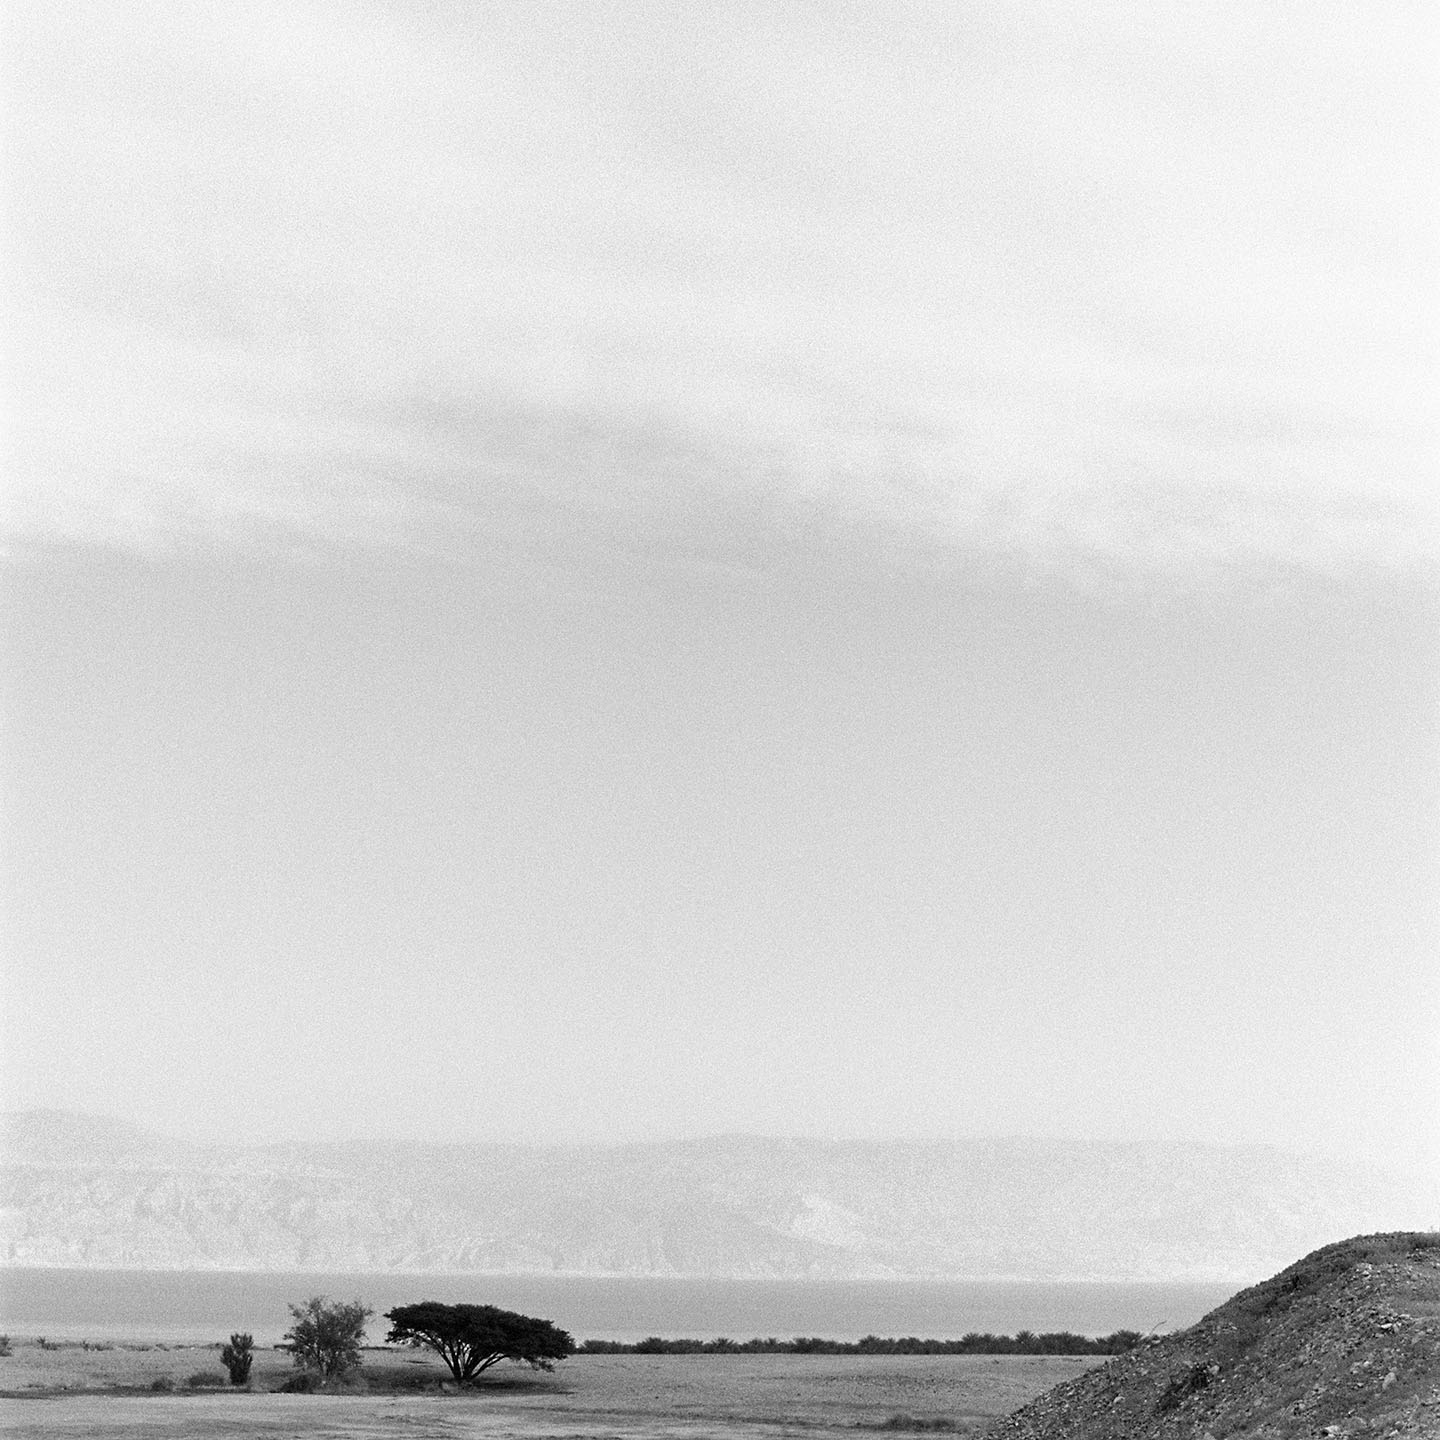 Landscape with 3 trees